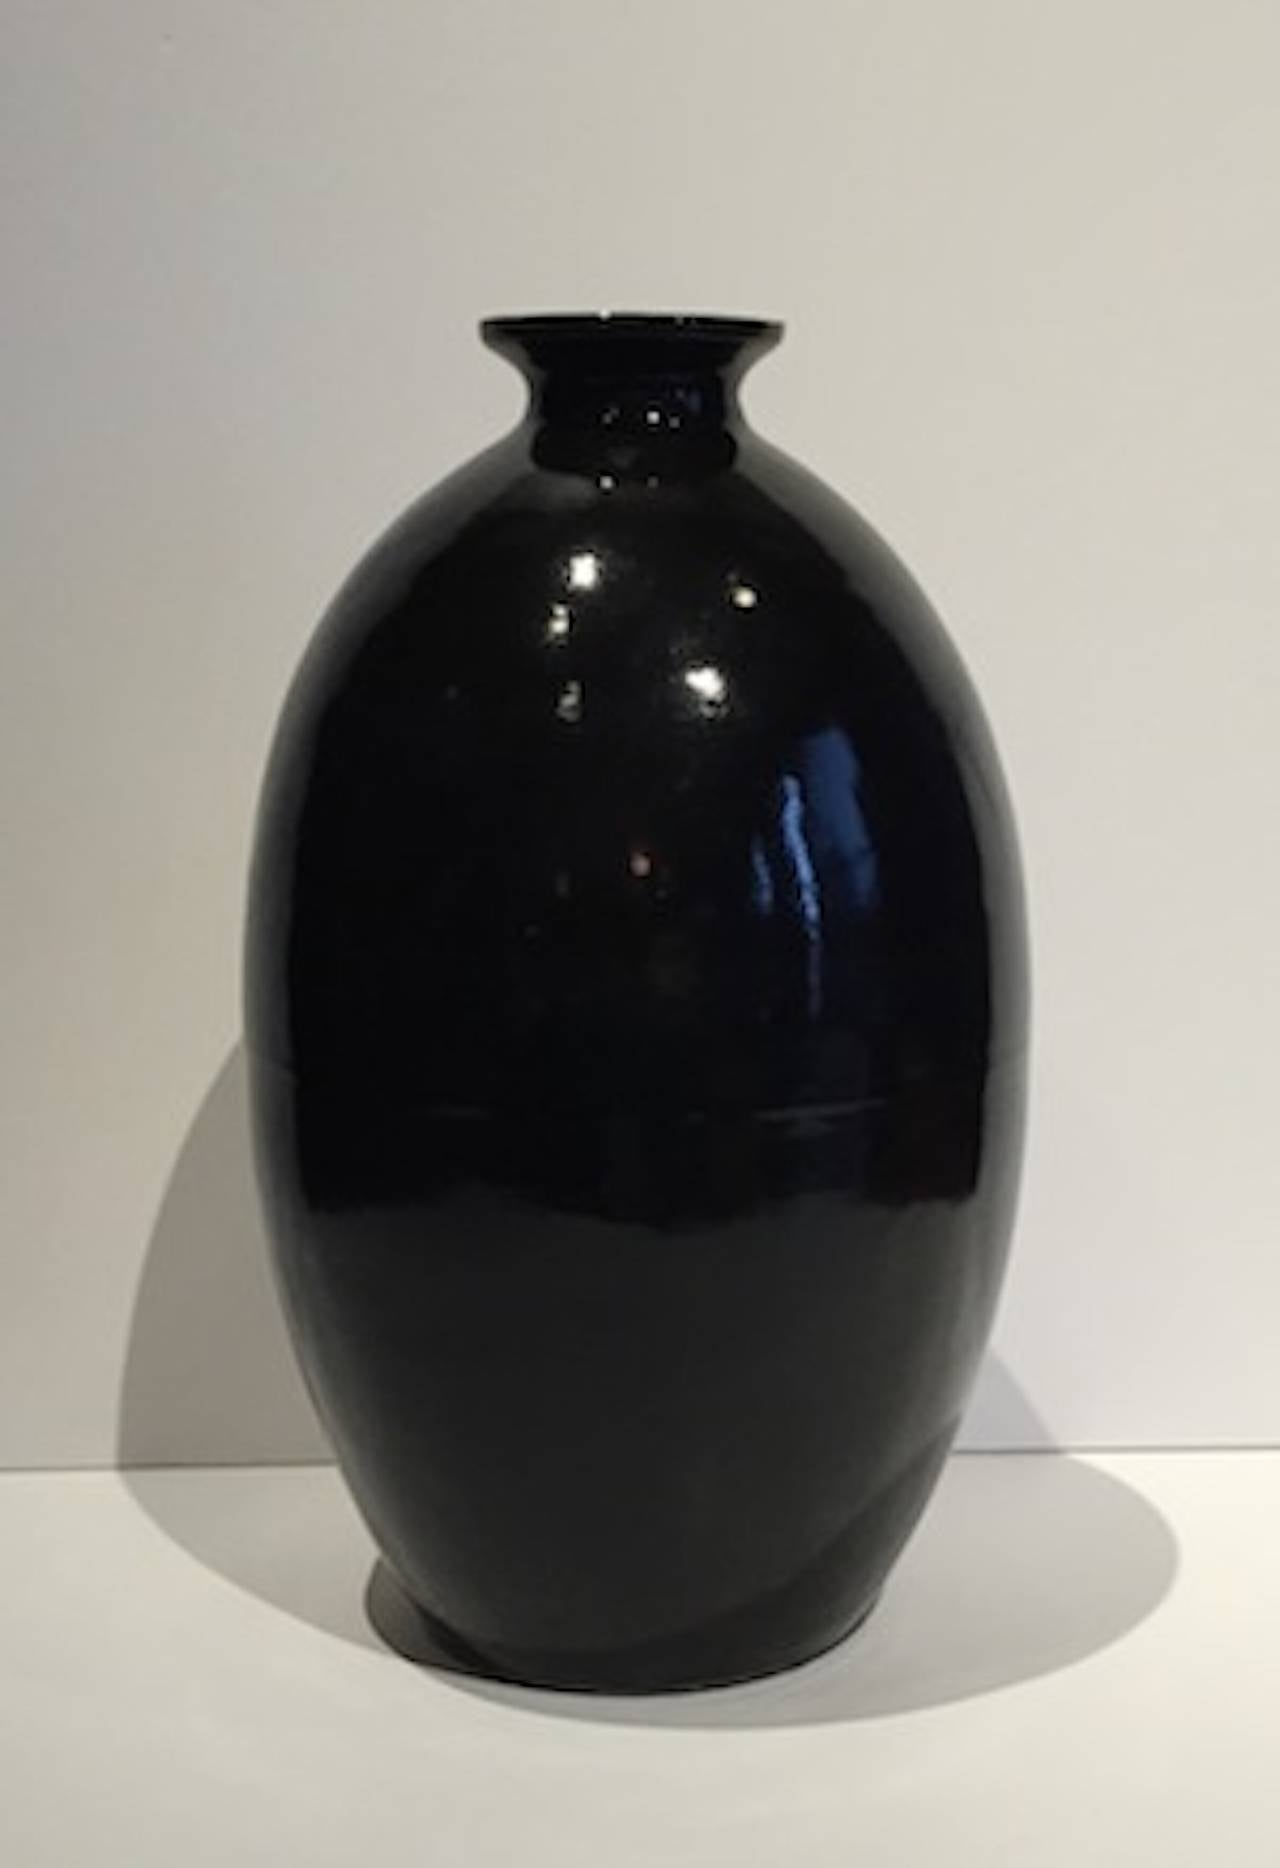 Collection of Extra Large High Gloss Black Vases, China, Contemporary In Excellent Condition For Sale In New York, NY